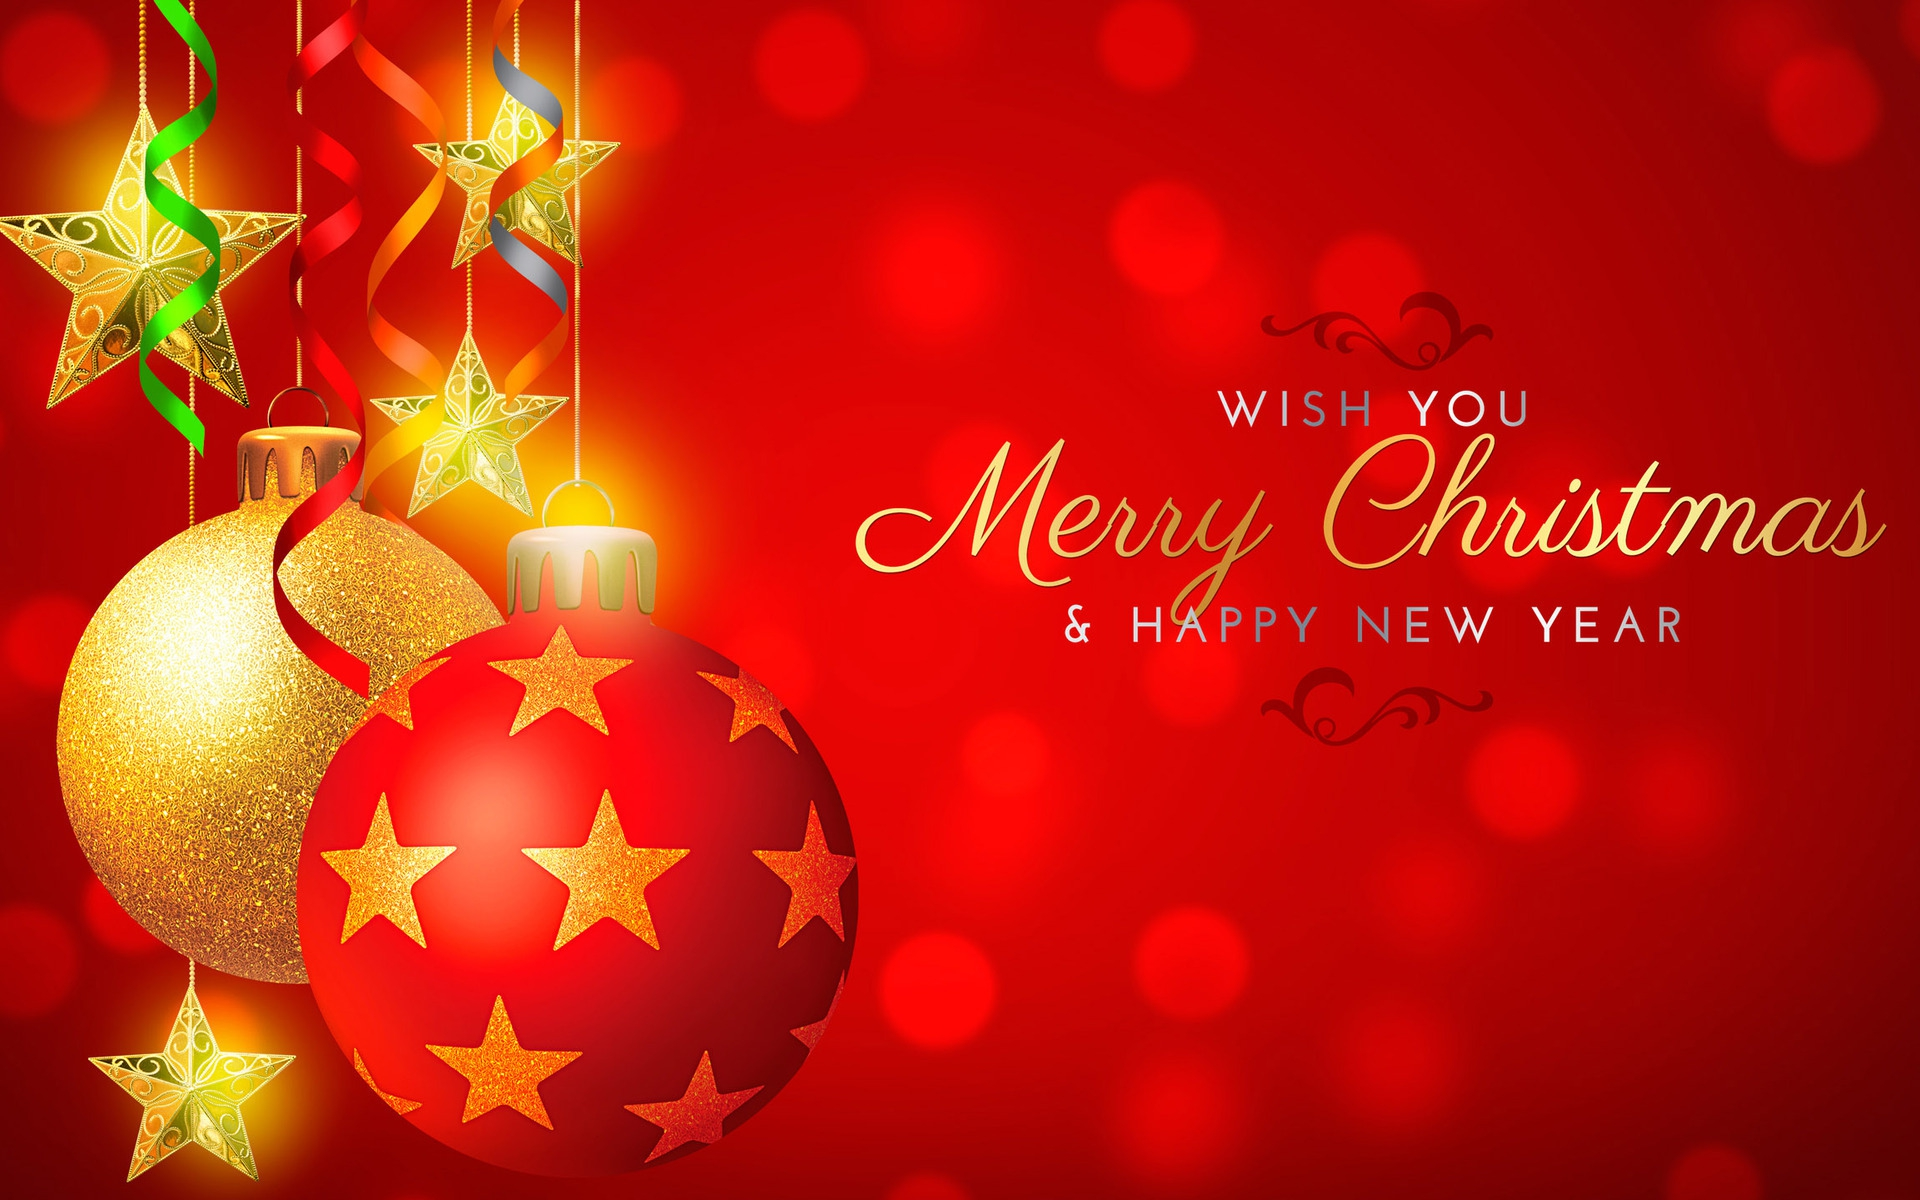 Wish You Happy Christmas Wallpapers Free Hd Download